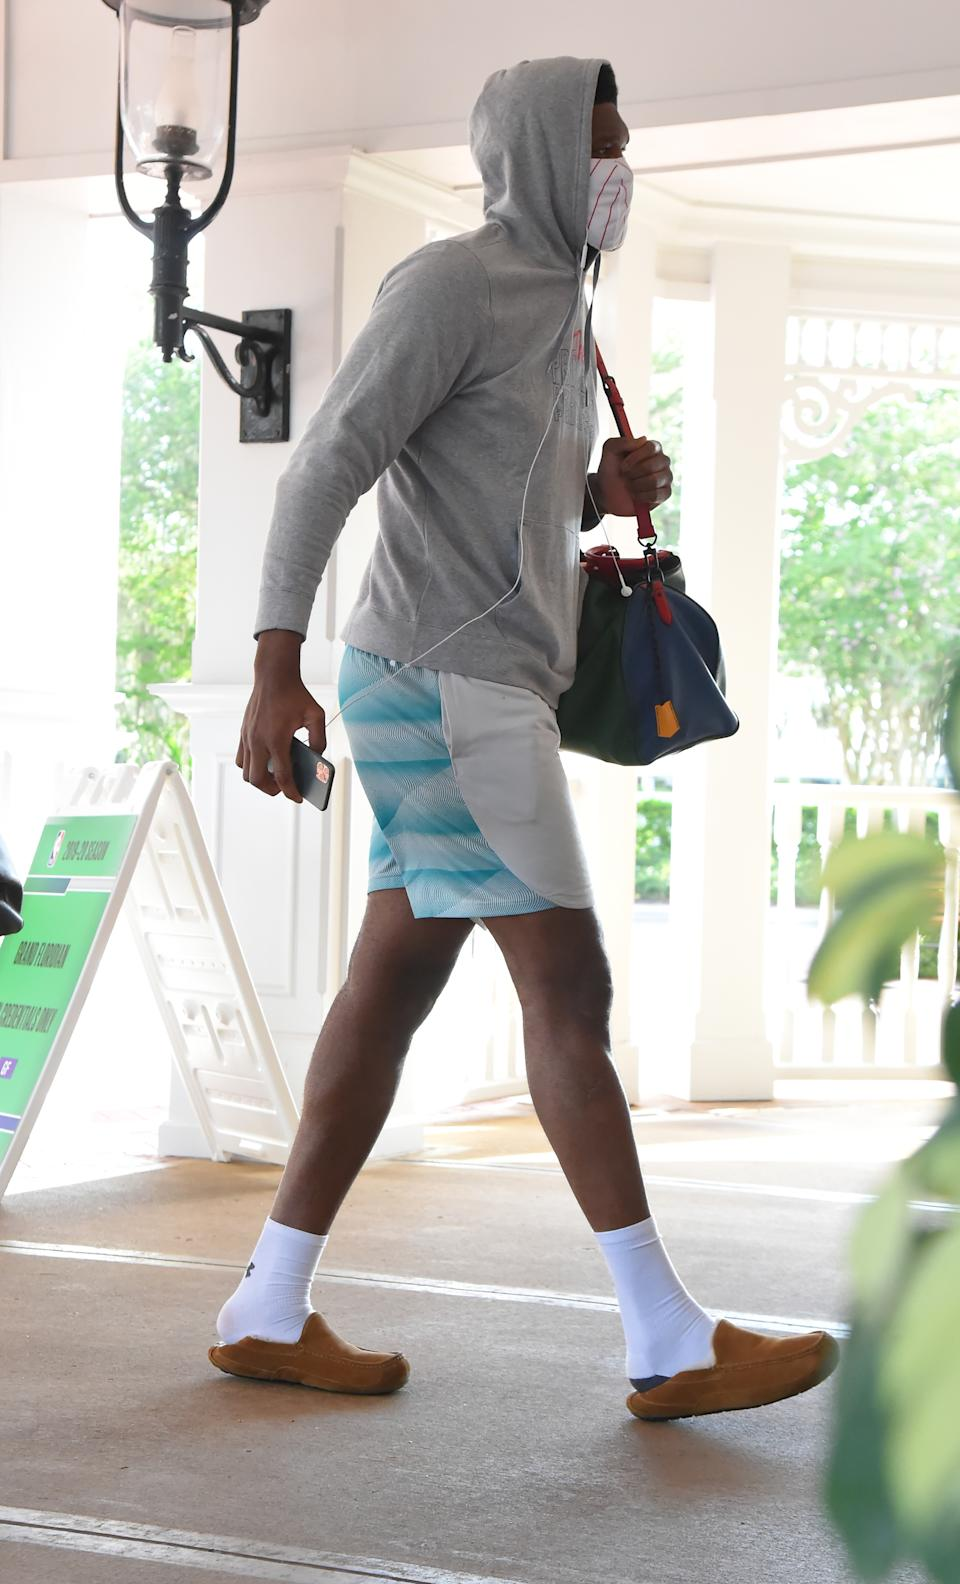 Joel Embiid of the Philadelphia 76ers arrives at the hotel as part of the NBA Restart 2020 on July 9, 2020 in Orlando, Florida. (Photo by Bill Baptist/NBAE via Getty Images)